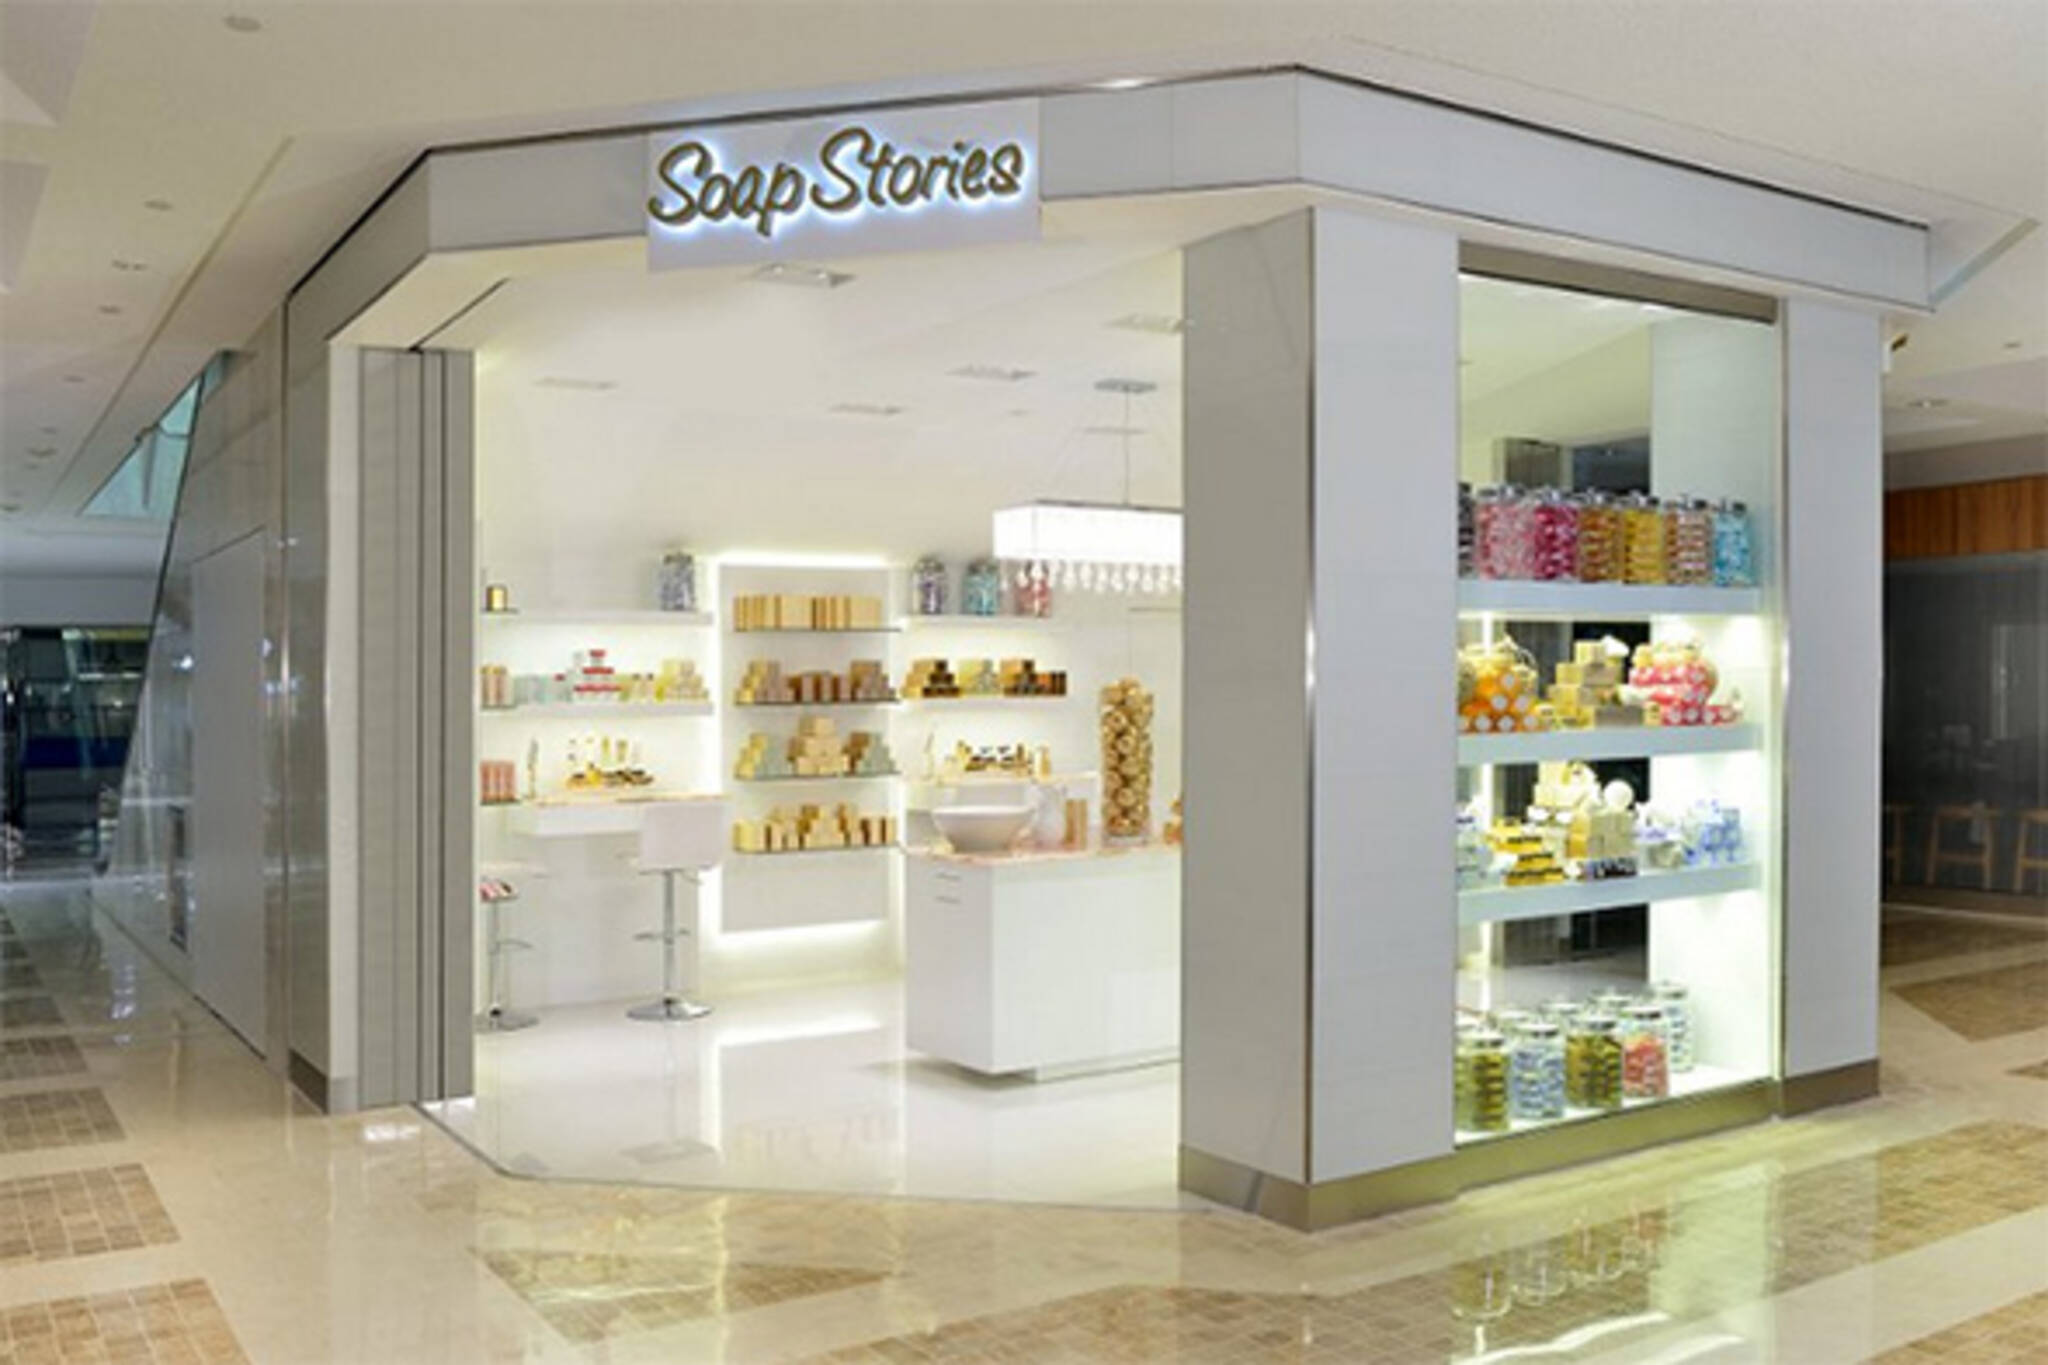 The Top 5 Soap Stores In Toronto